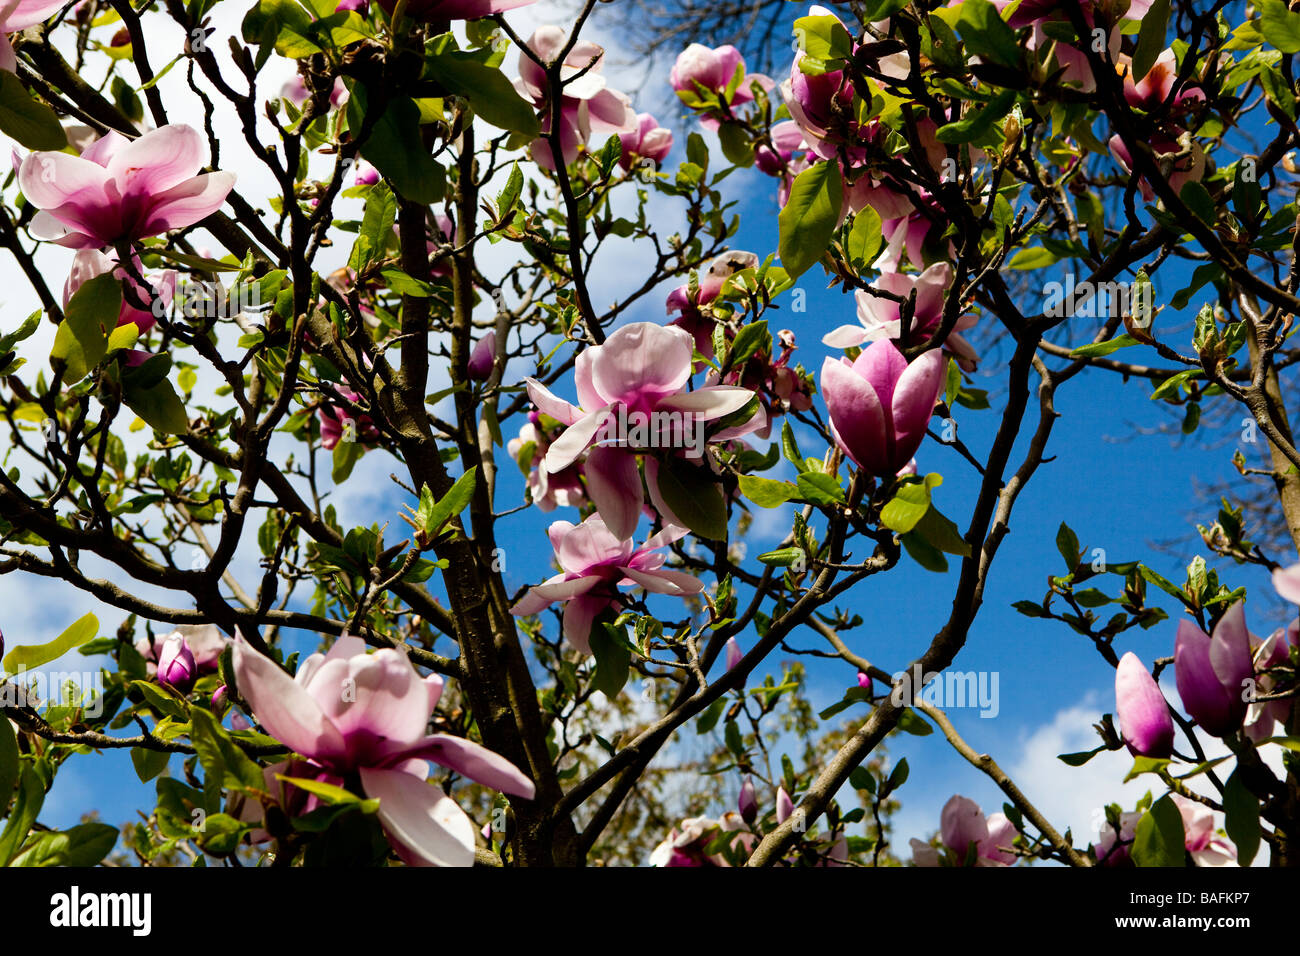 Large pink flowers on magnolia tree stock photo 23701727 alamy large pink flowers on magnolia tree mightylinksfo